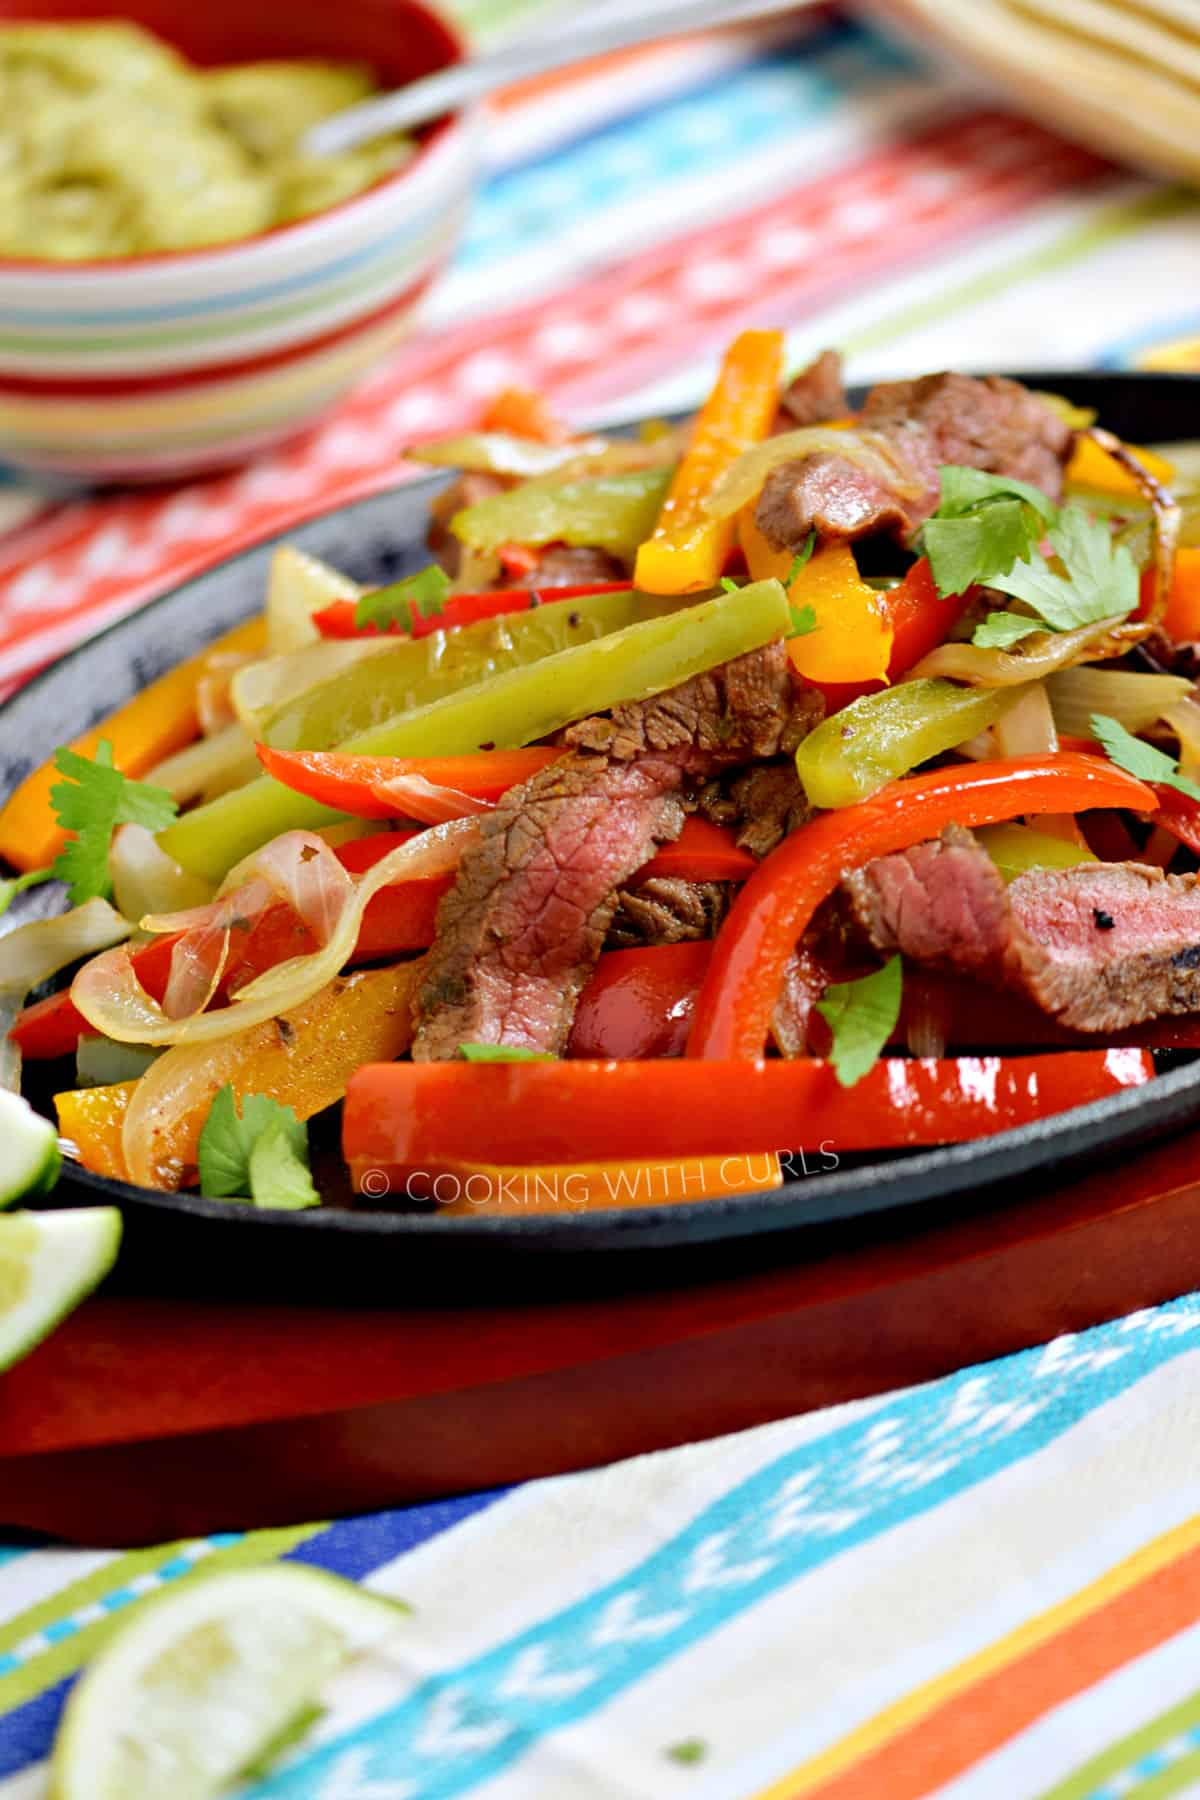 Strips of charred steak, bell peppers and onions in a fajita skillet surrounded by guacamole and salsa in small bowls.